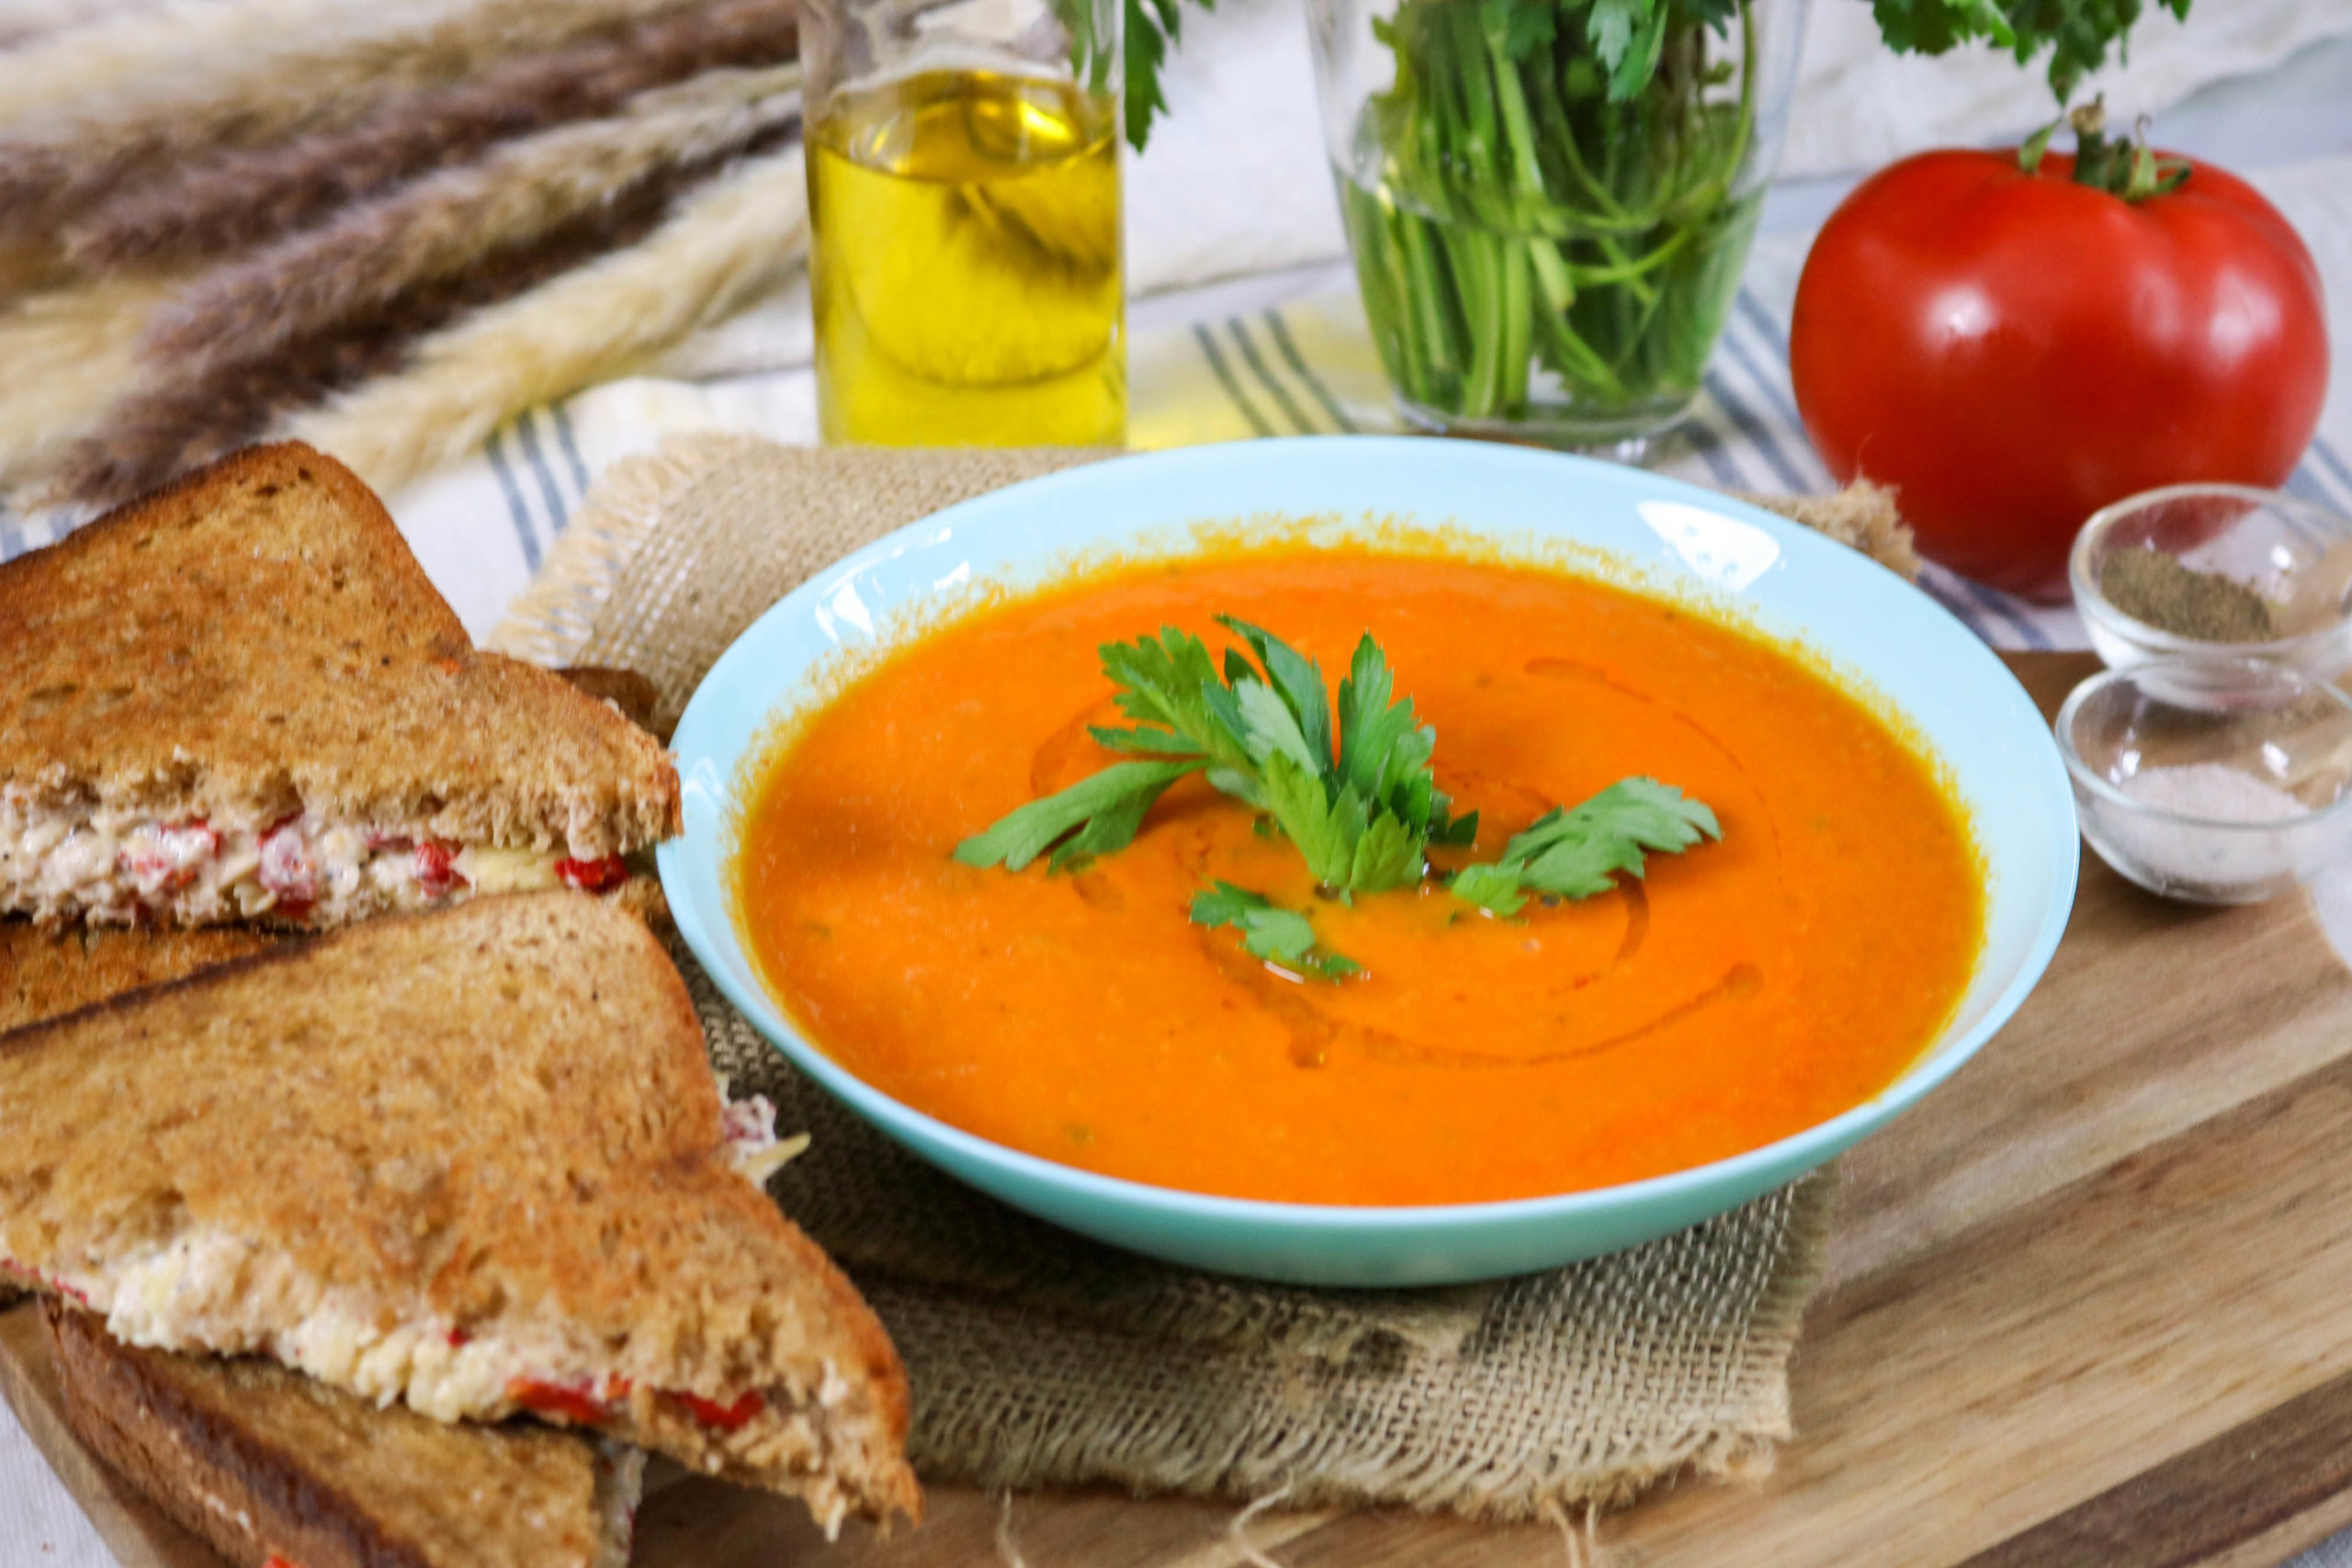 Tomato Basil Soup With Grilled Pimento Cheese Sandwiches